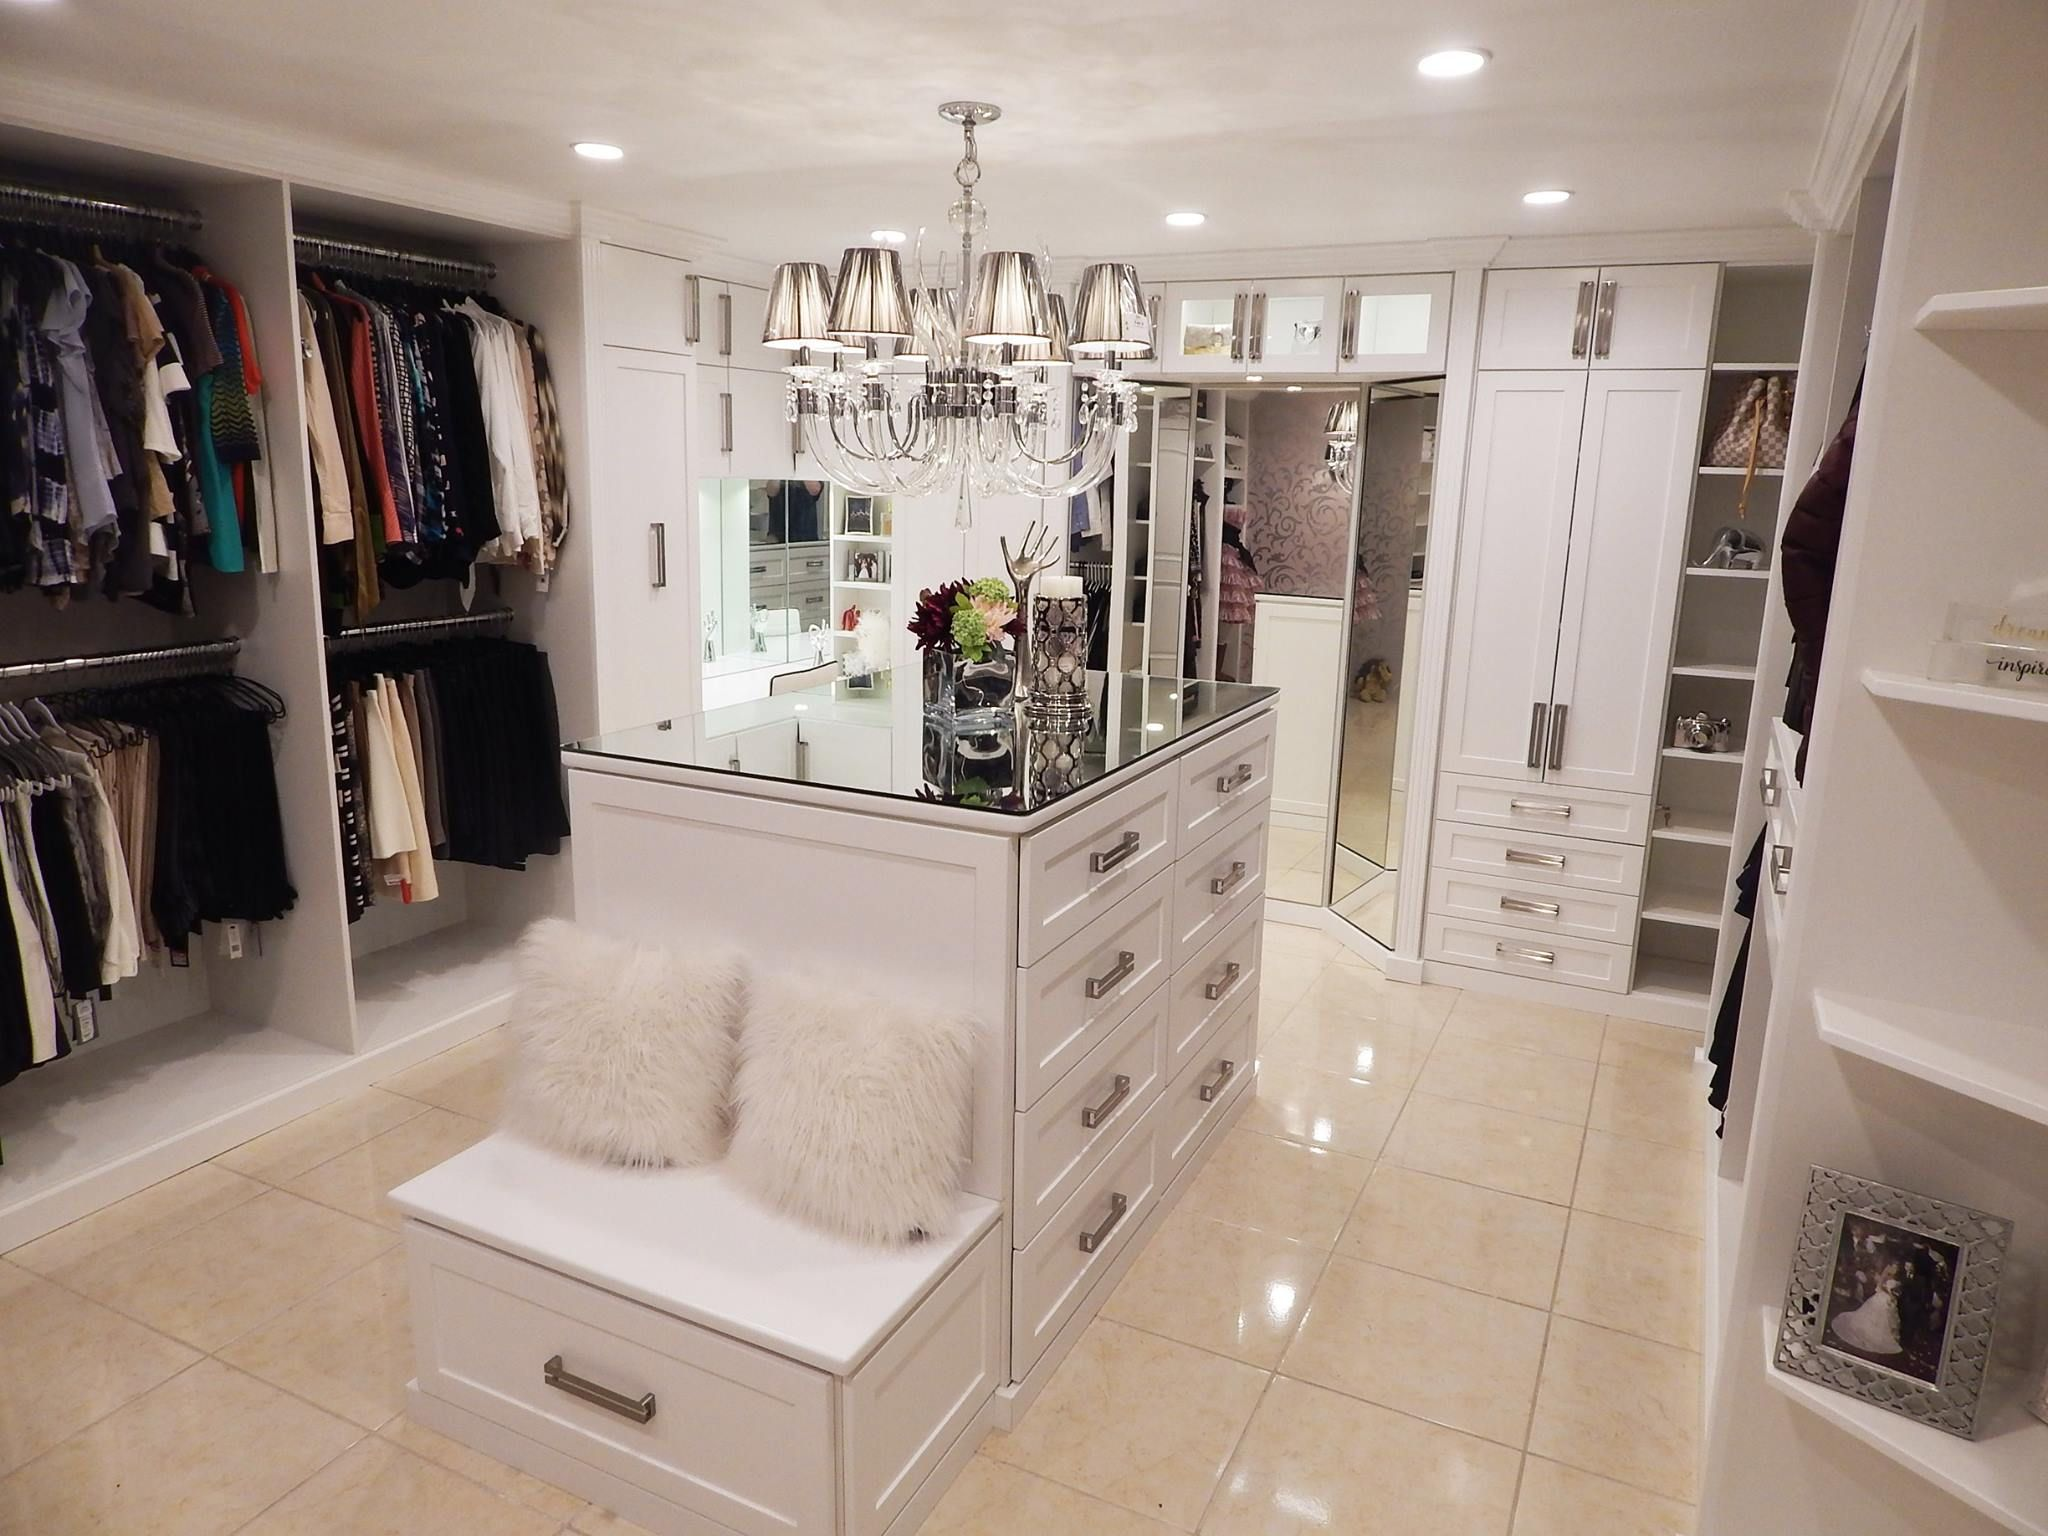 Your Dream Closet, Now With 3 Way Mirrors. Learn More Here: Https